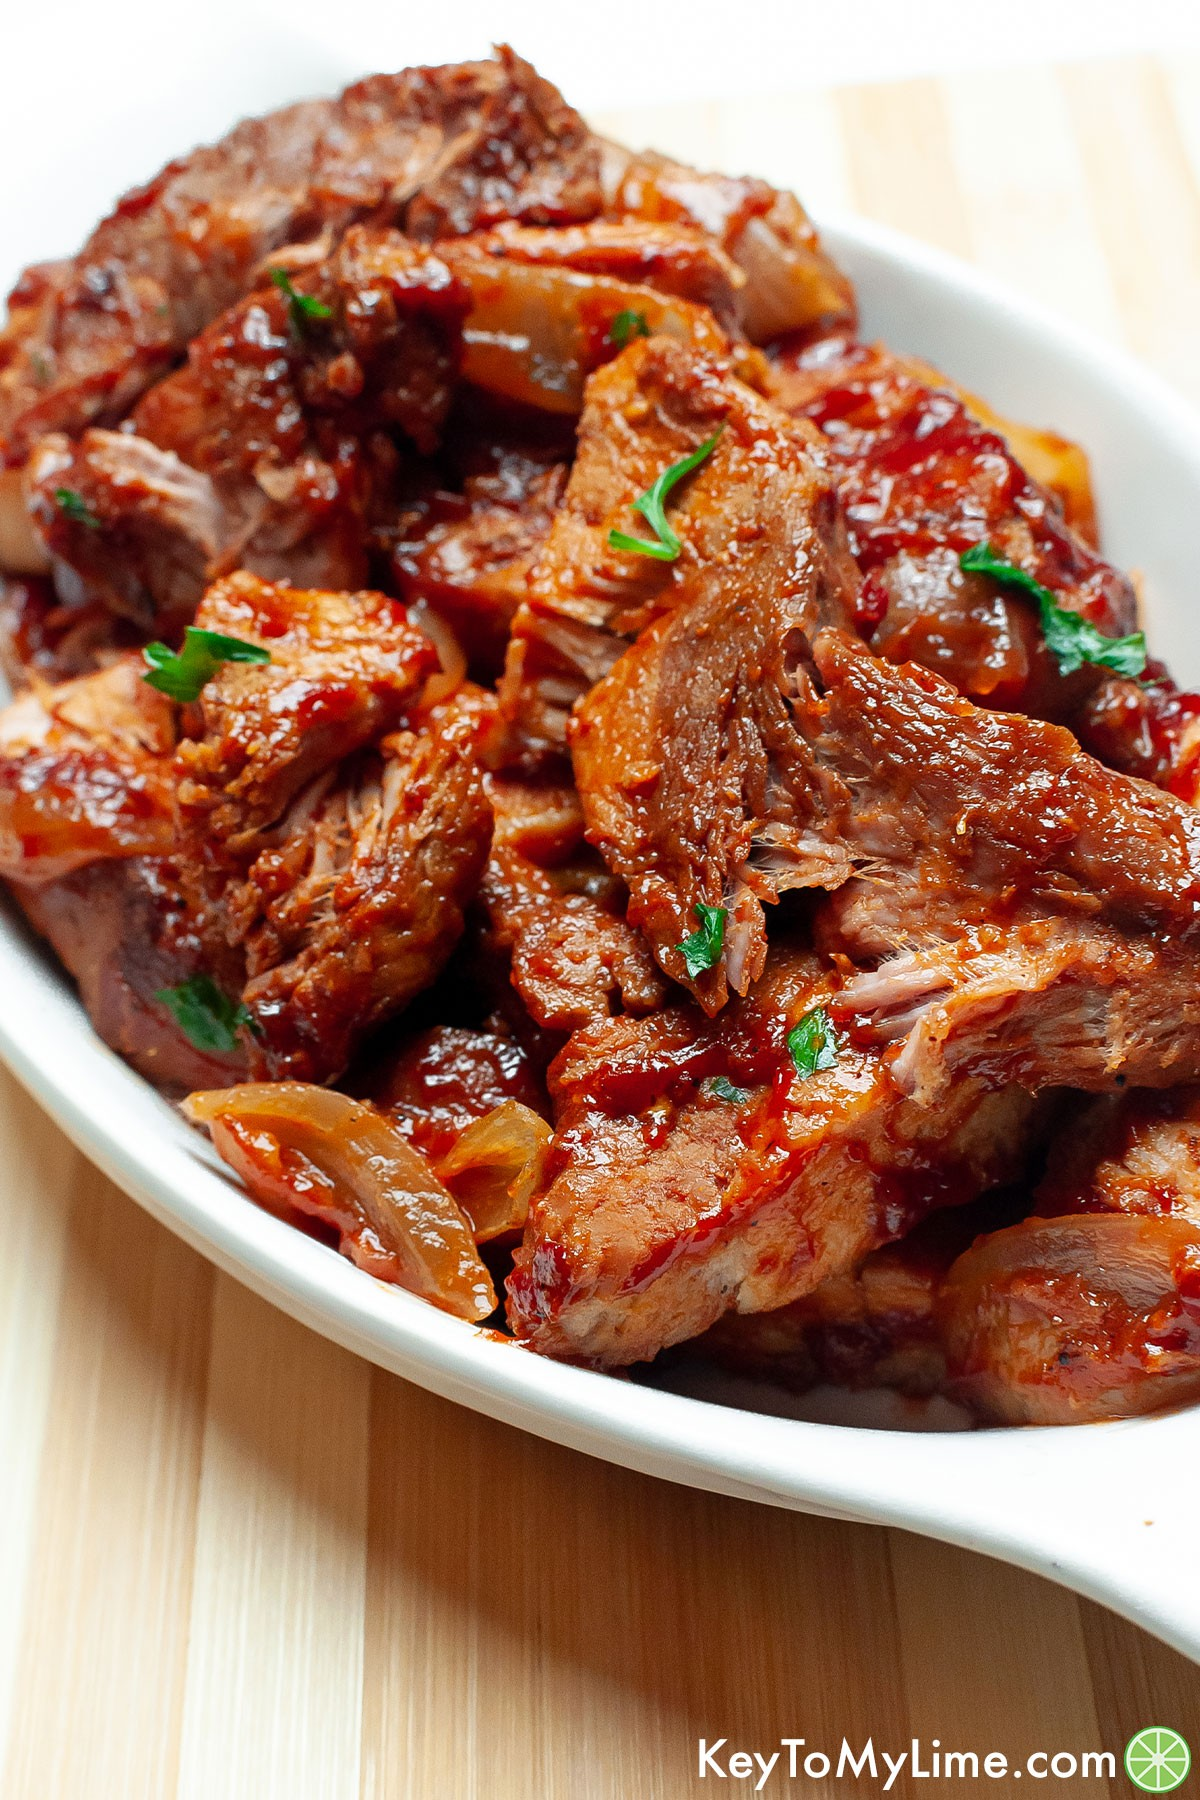 A plate filled with country style ribs.